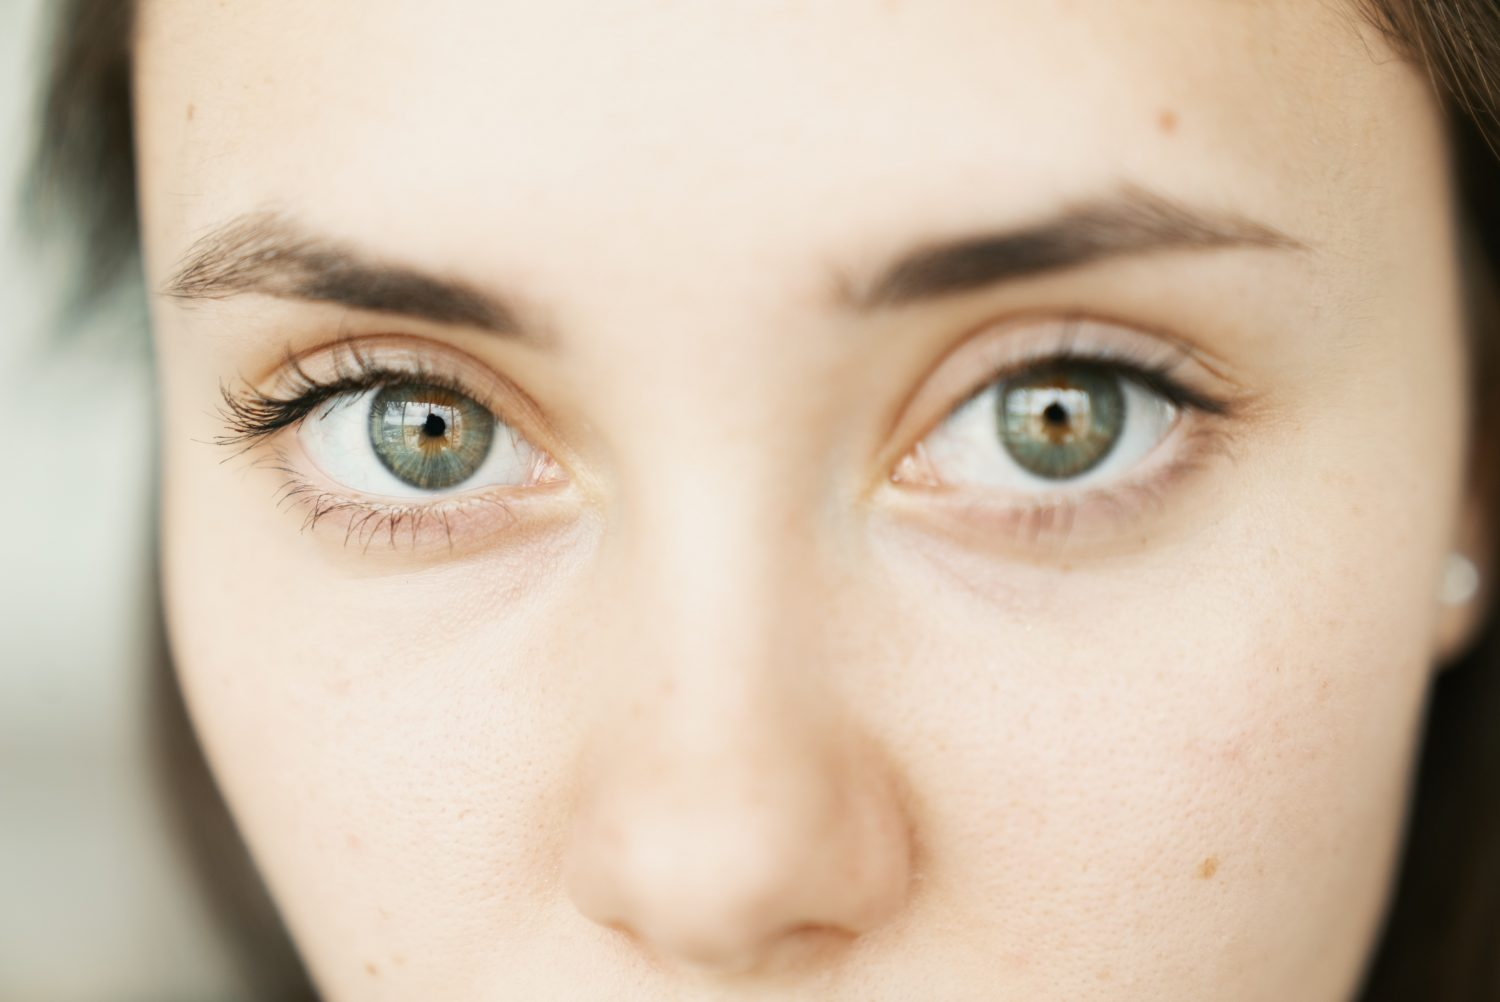 eye contact: the importance and meaning behind the gaze